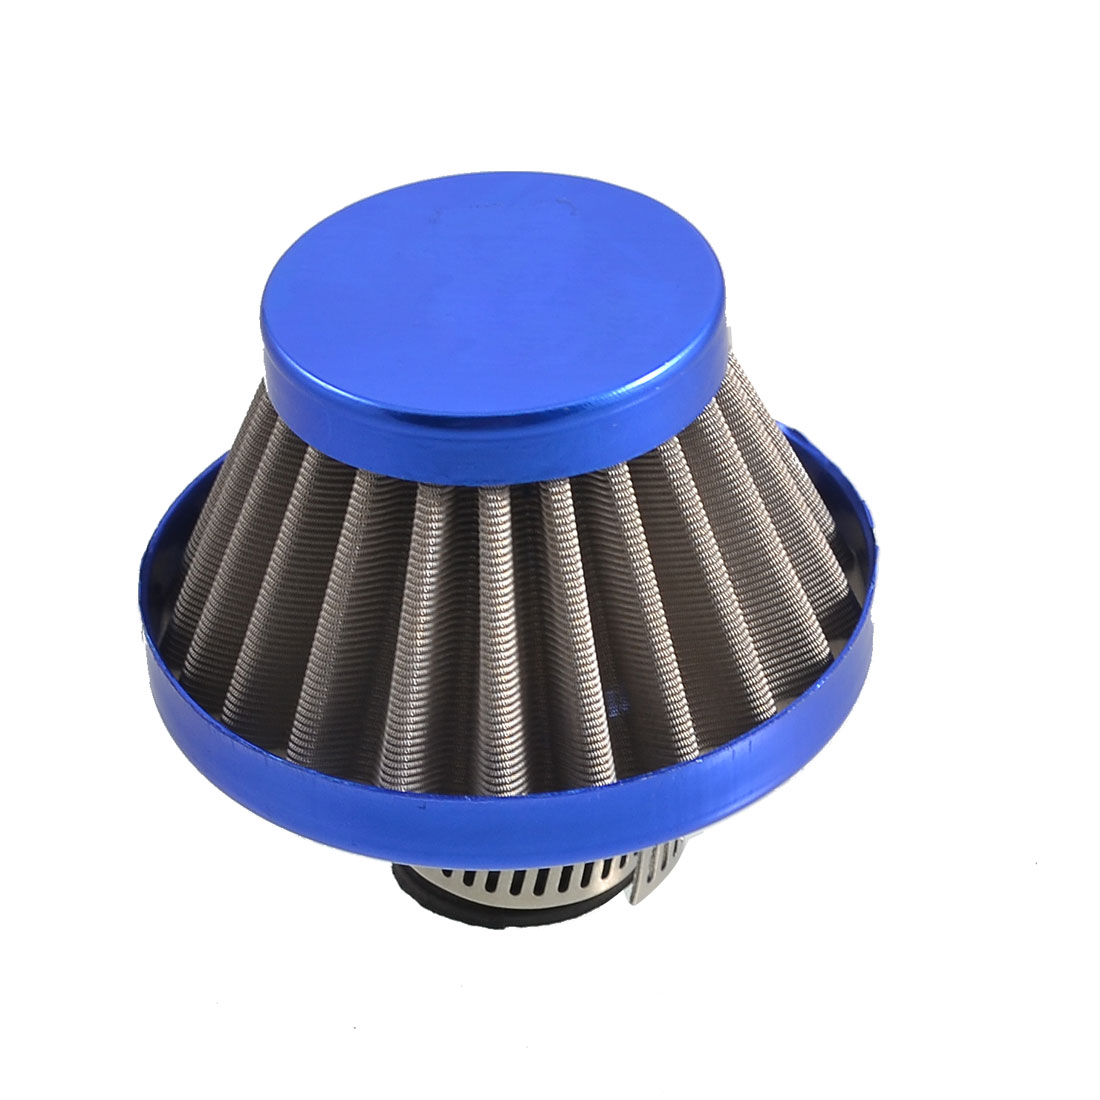 "Auto Car Rubber End Clamp on 11mm 0.5"" Intake Tapered Air Filter Blue"